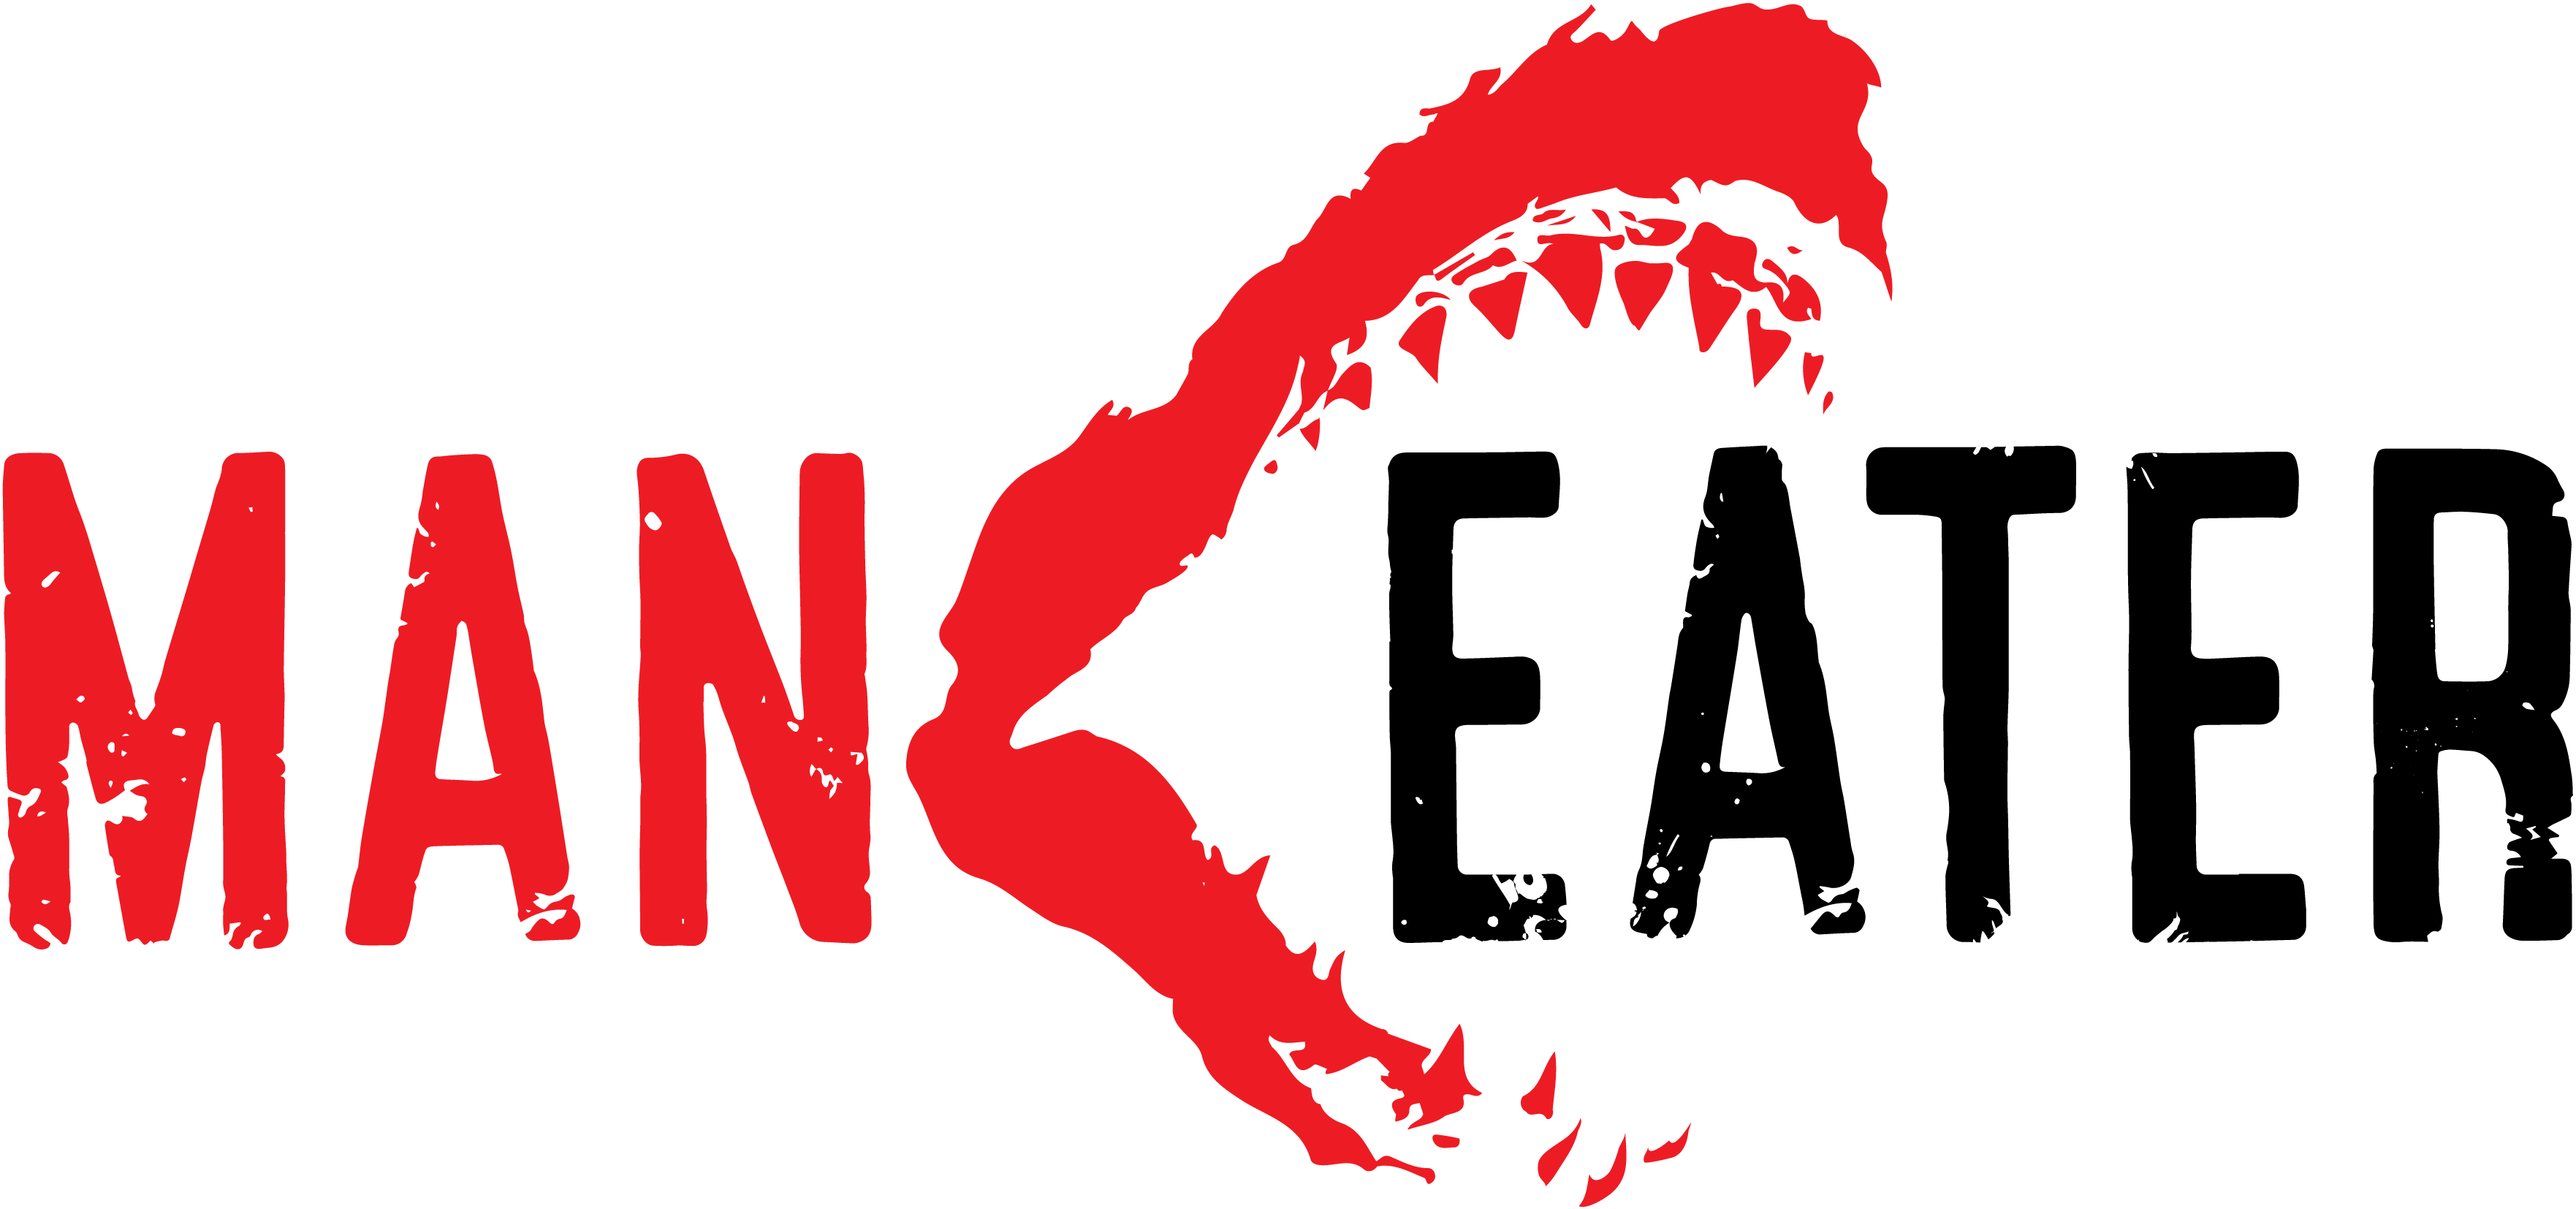 The Maneater logo